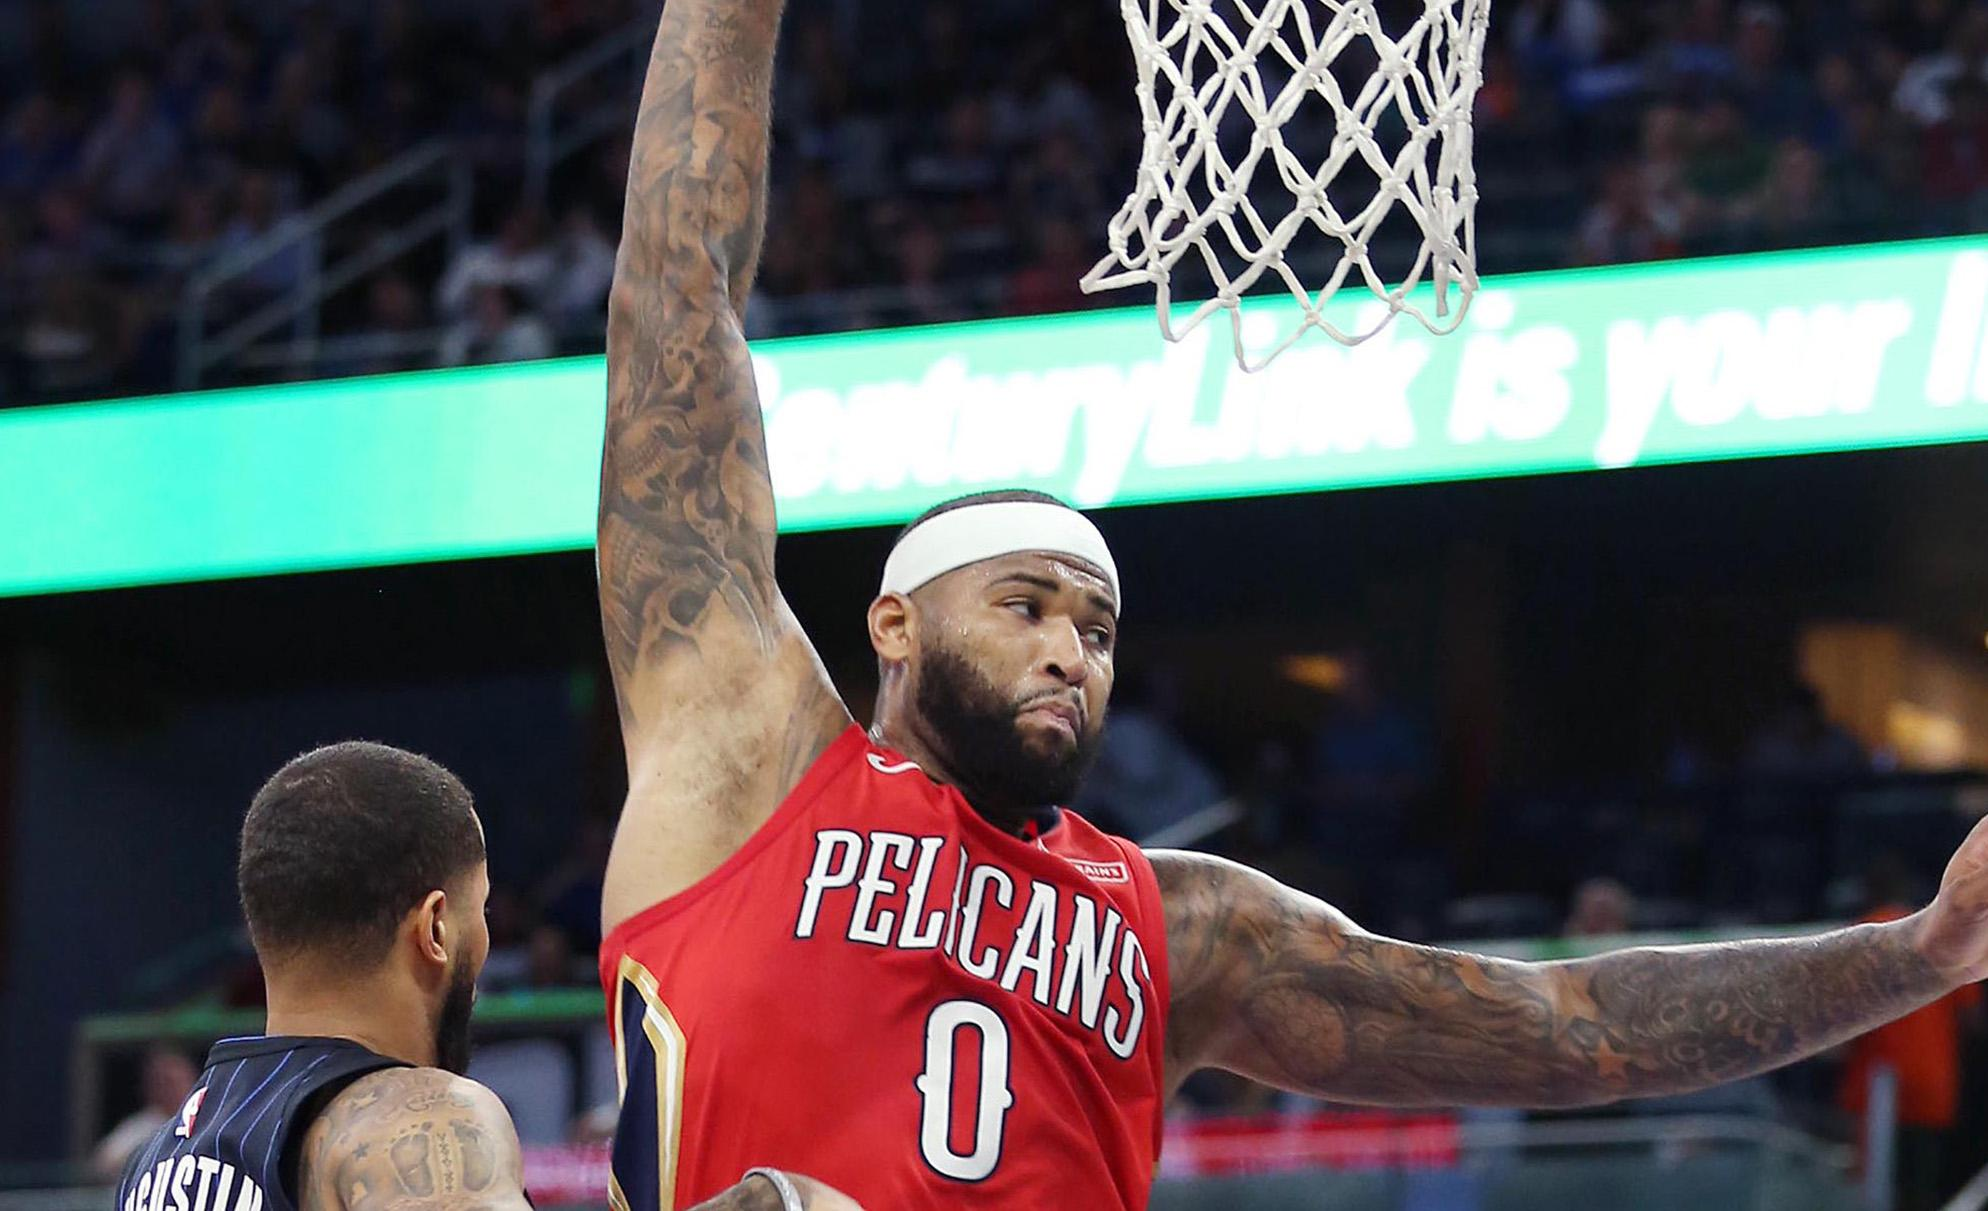 Hensley: DeMarcus Cousins' move perplexes NBA fans